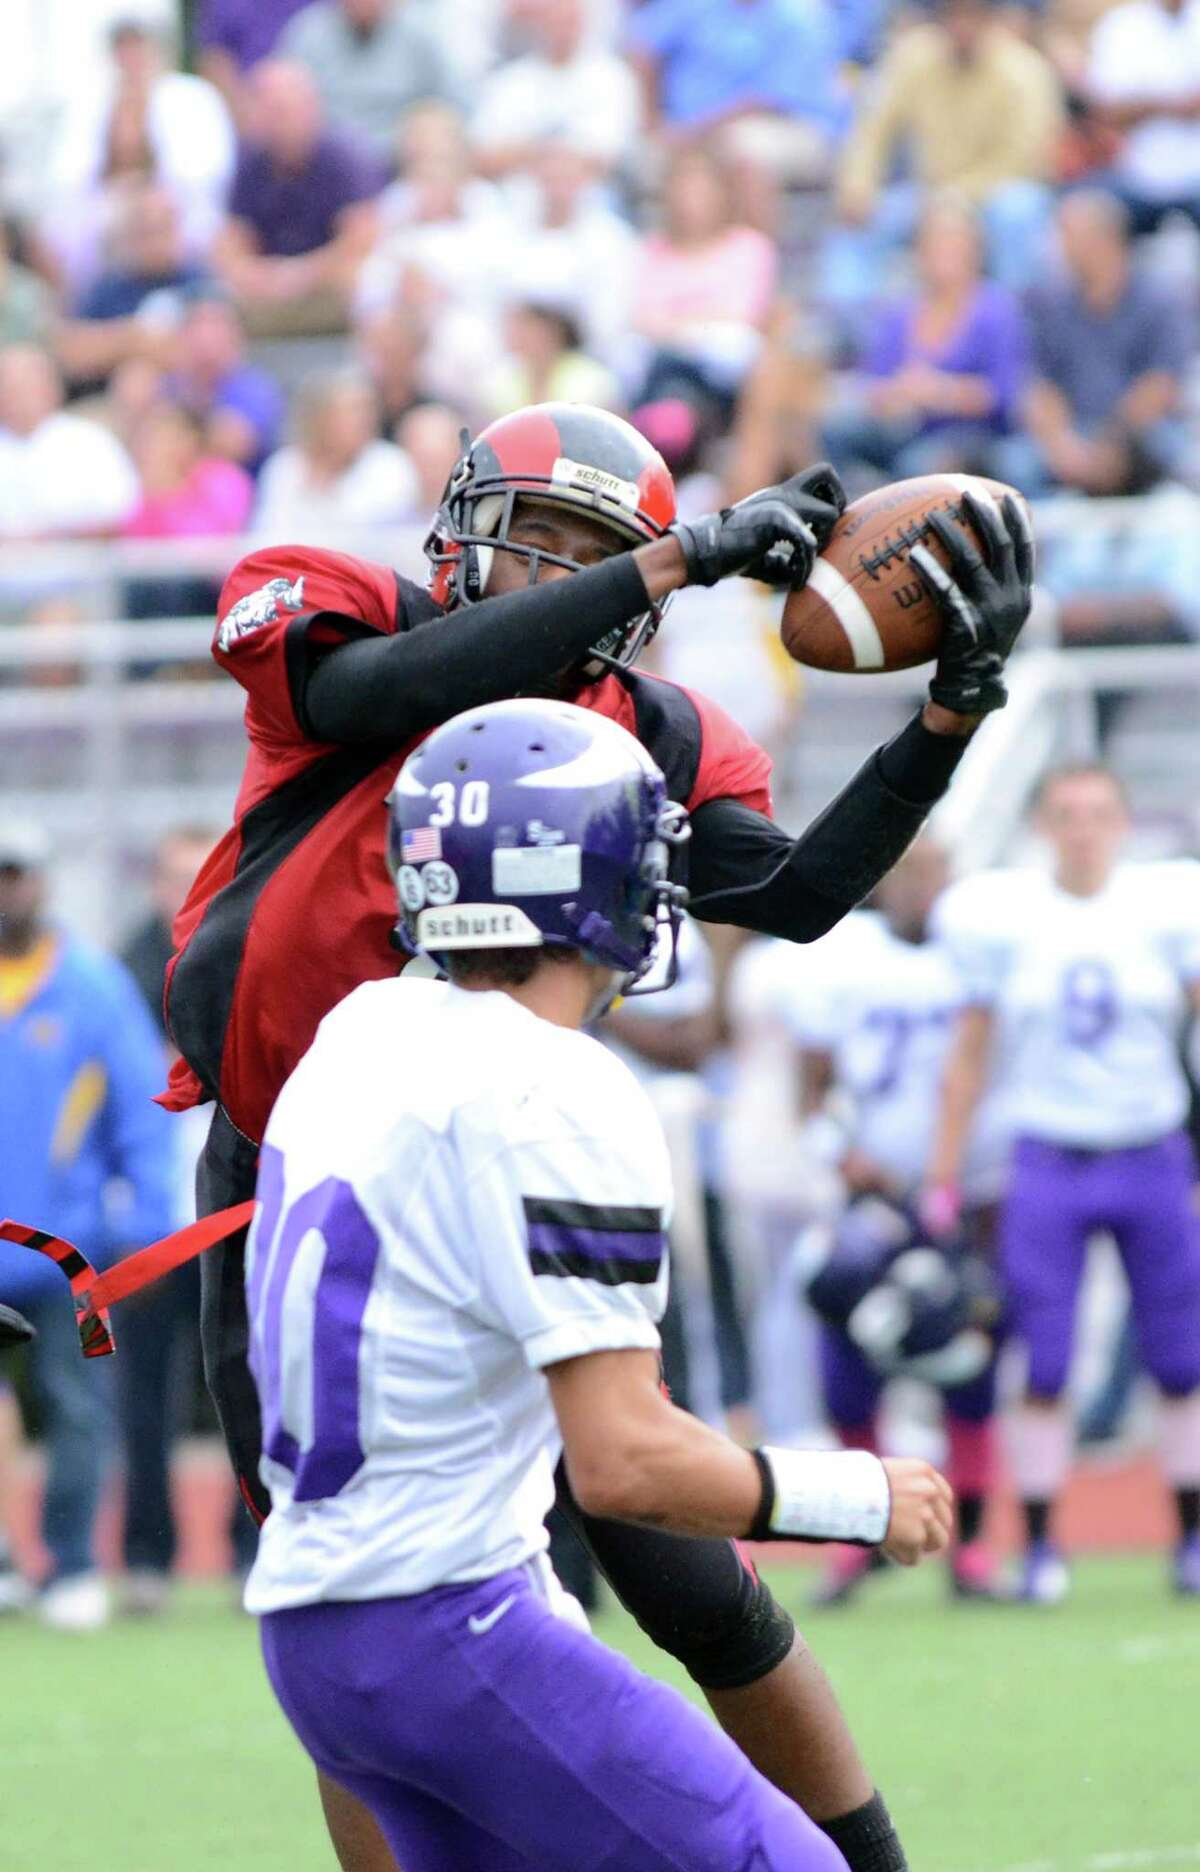 Central's Keyshaun Thomas (1) hauls in an interception intended for Westhill's Kyle Cruz (30) during the football game at Westhill High School on Saturday, Oct. 6, 2012.